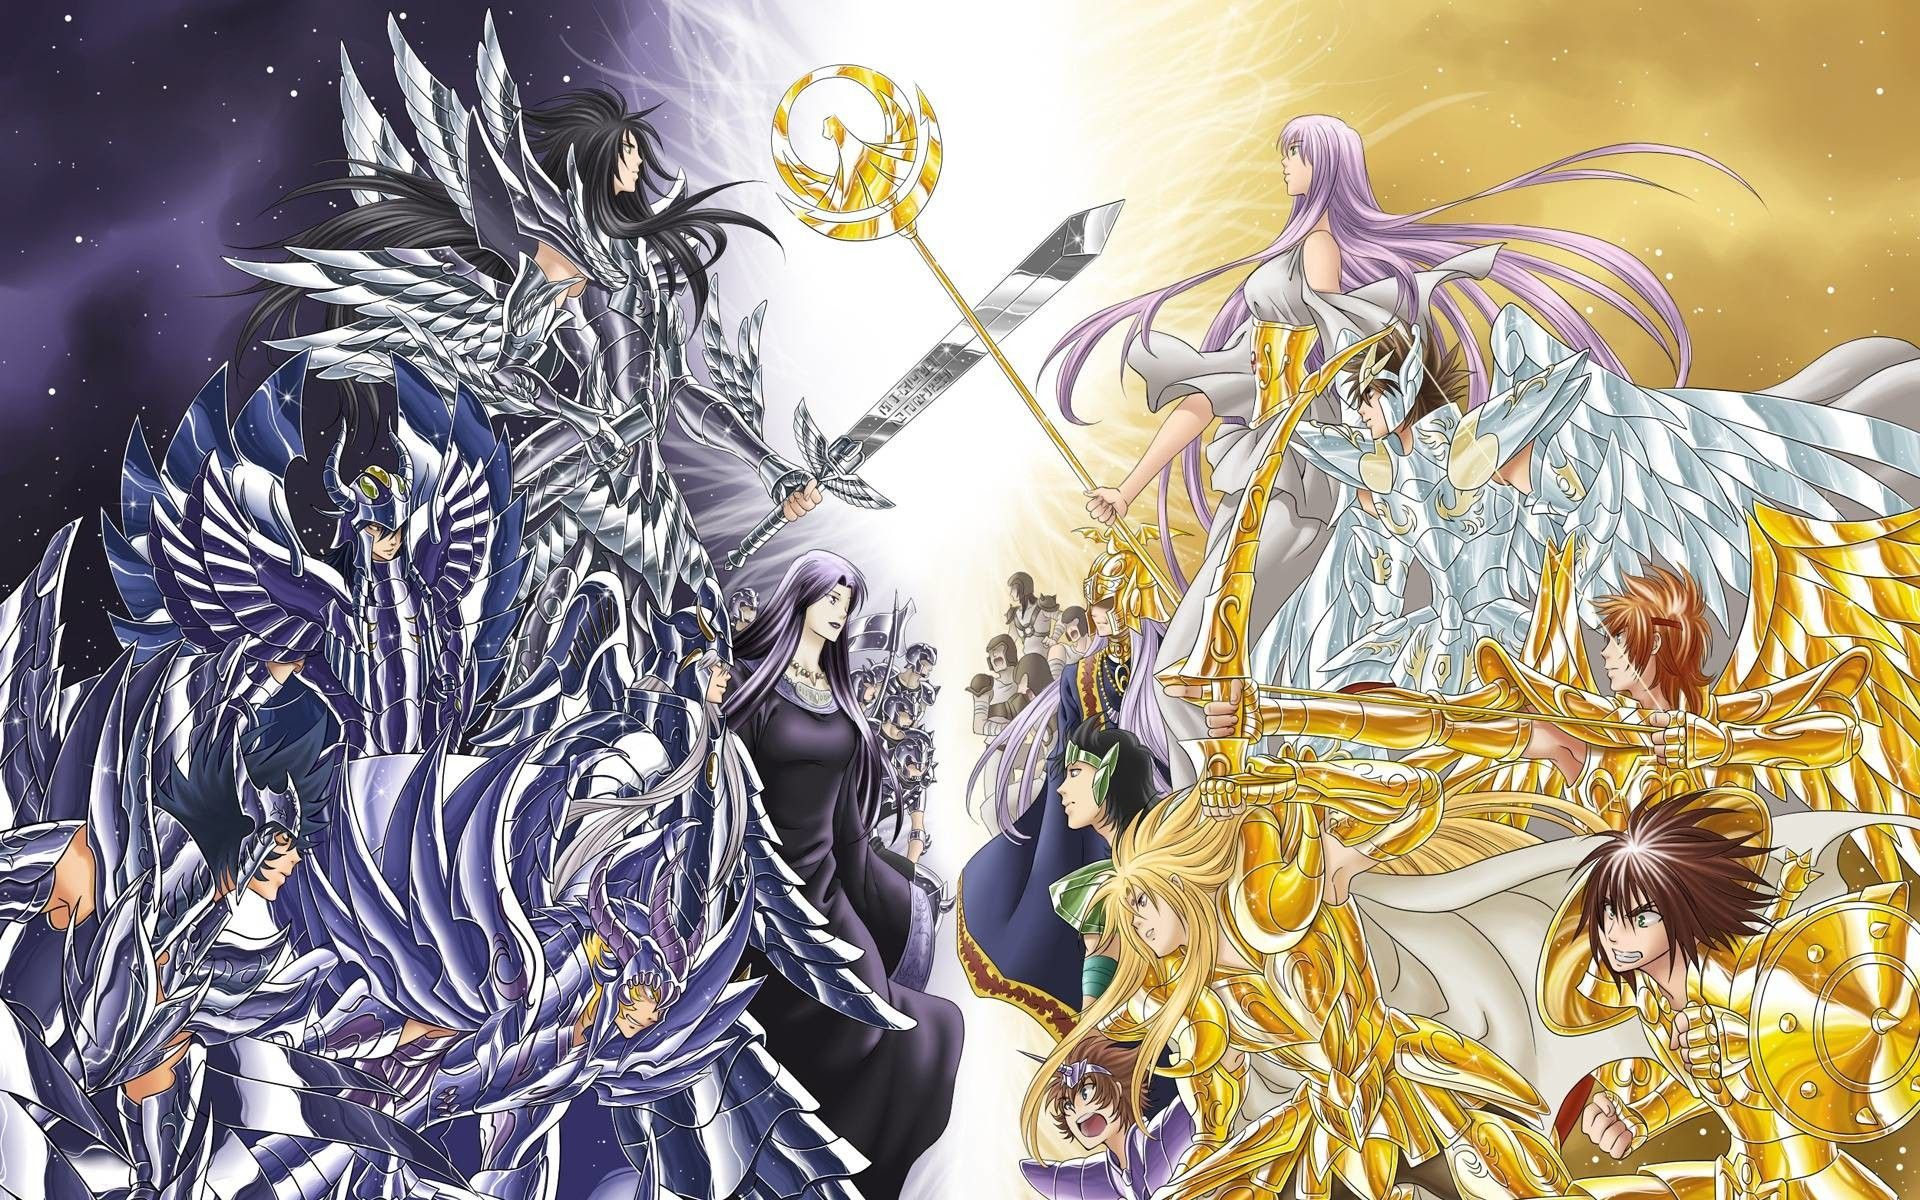 Saint Seiya The Lost Canvas Wallpapers Top Free Saint Seiya